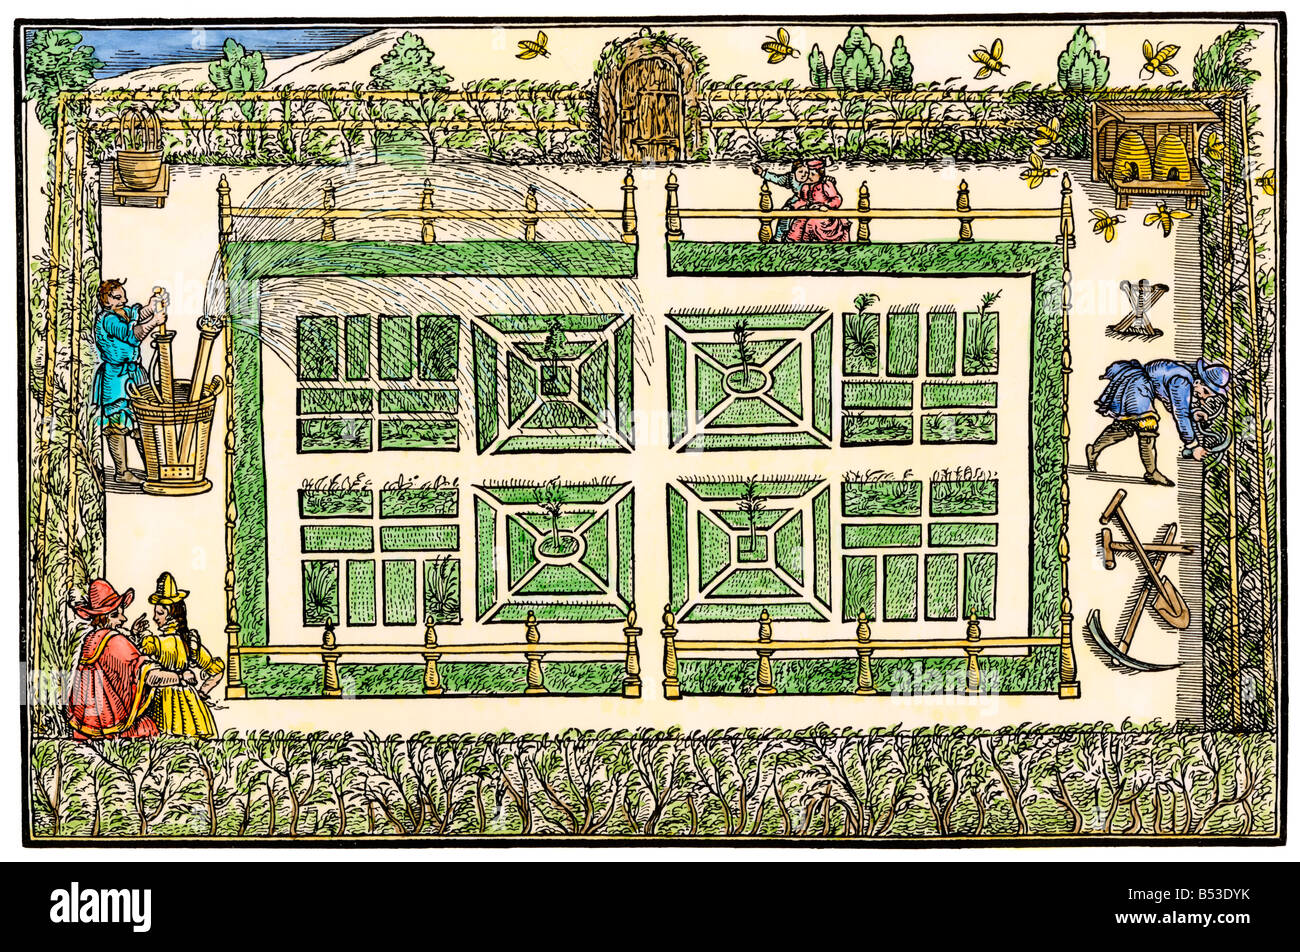 Garden water pumped through beds via intersecting channels formal bed design of 1571. Hand-colored woodcut - Stock Image